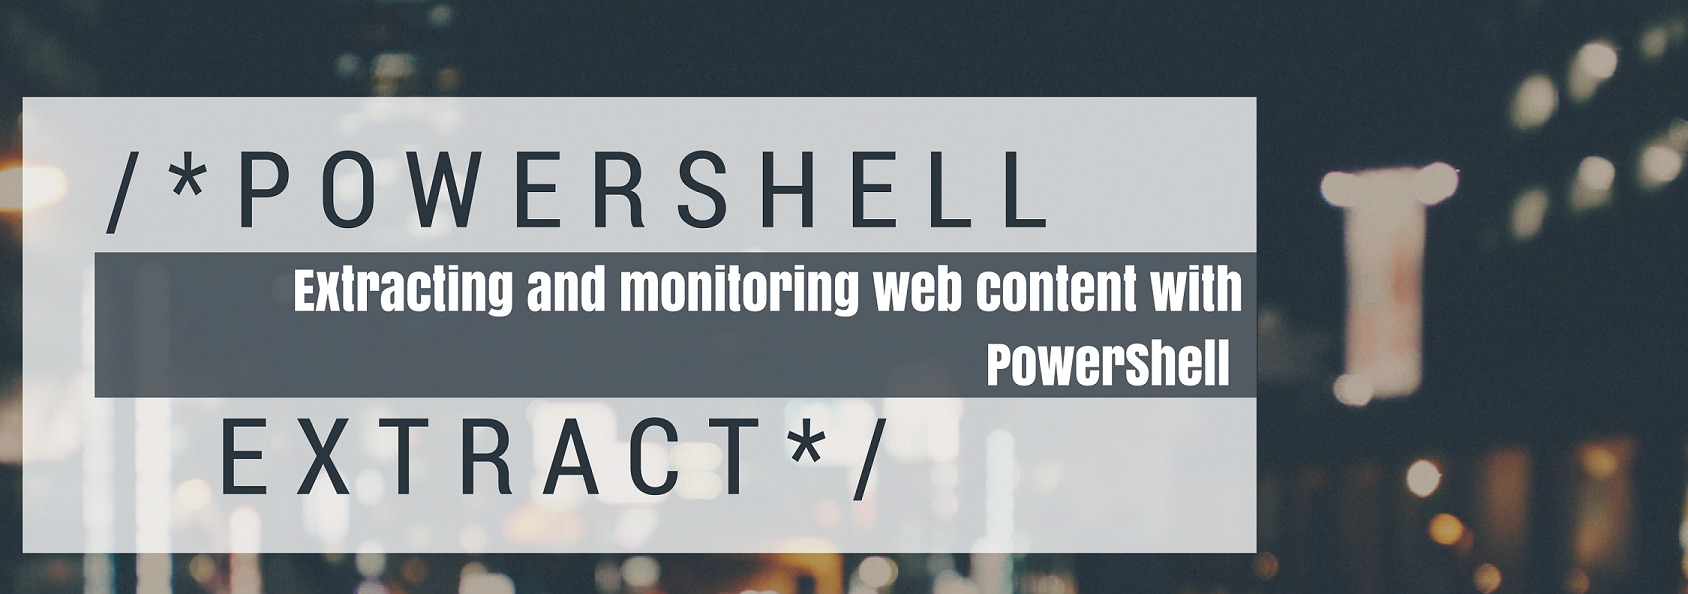 Extracting and monitoring web content with PowerShell